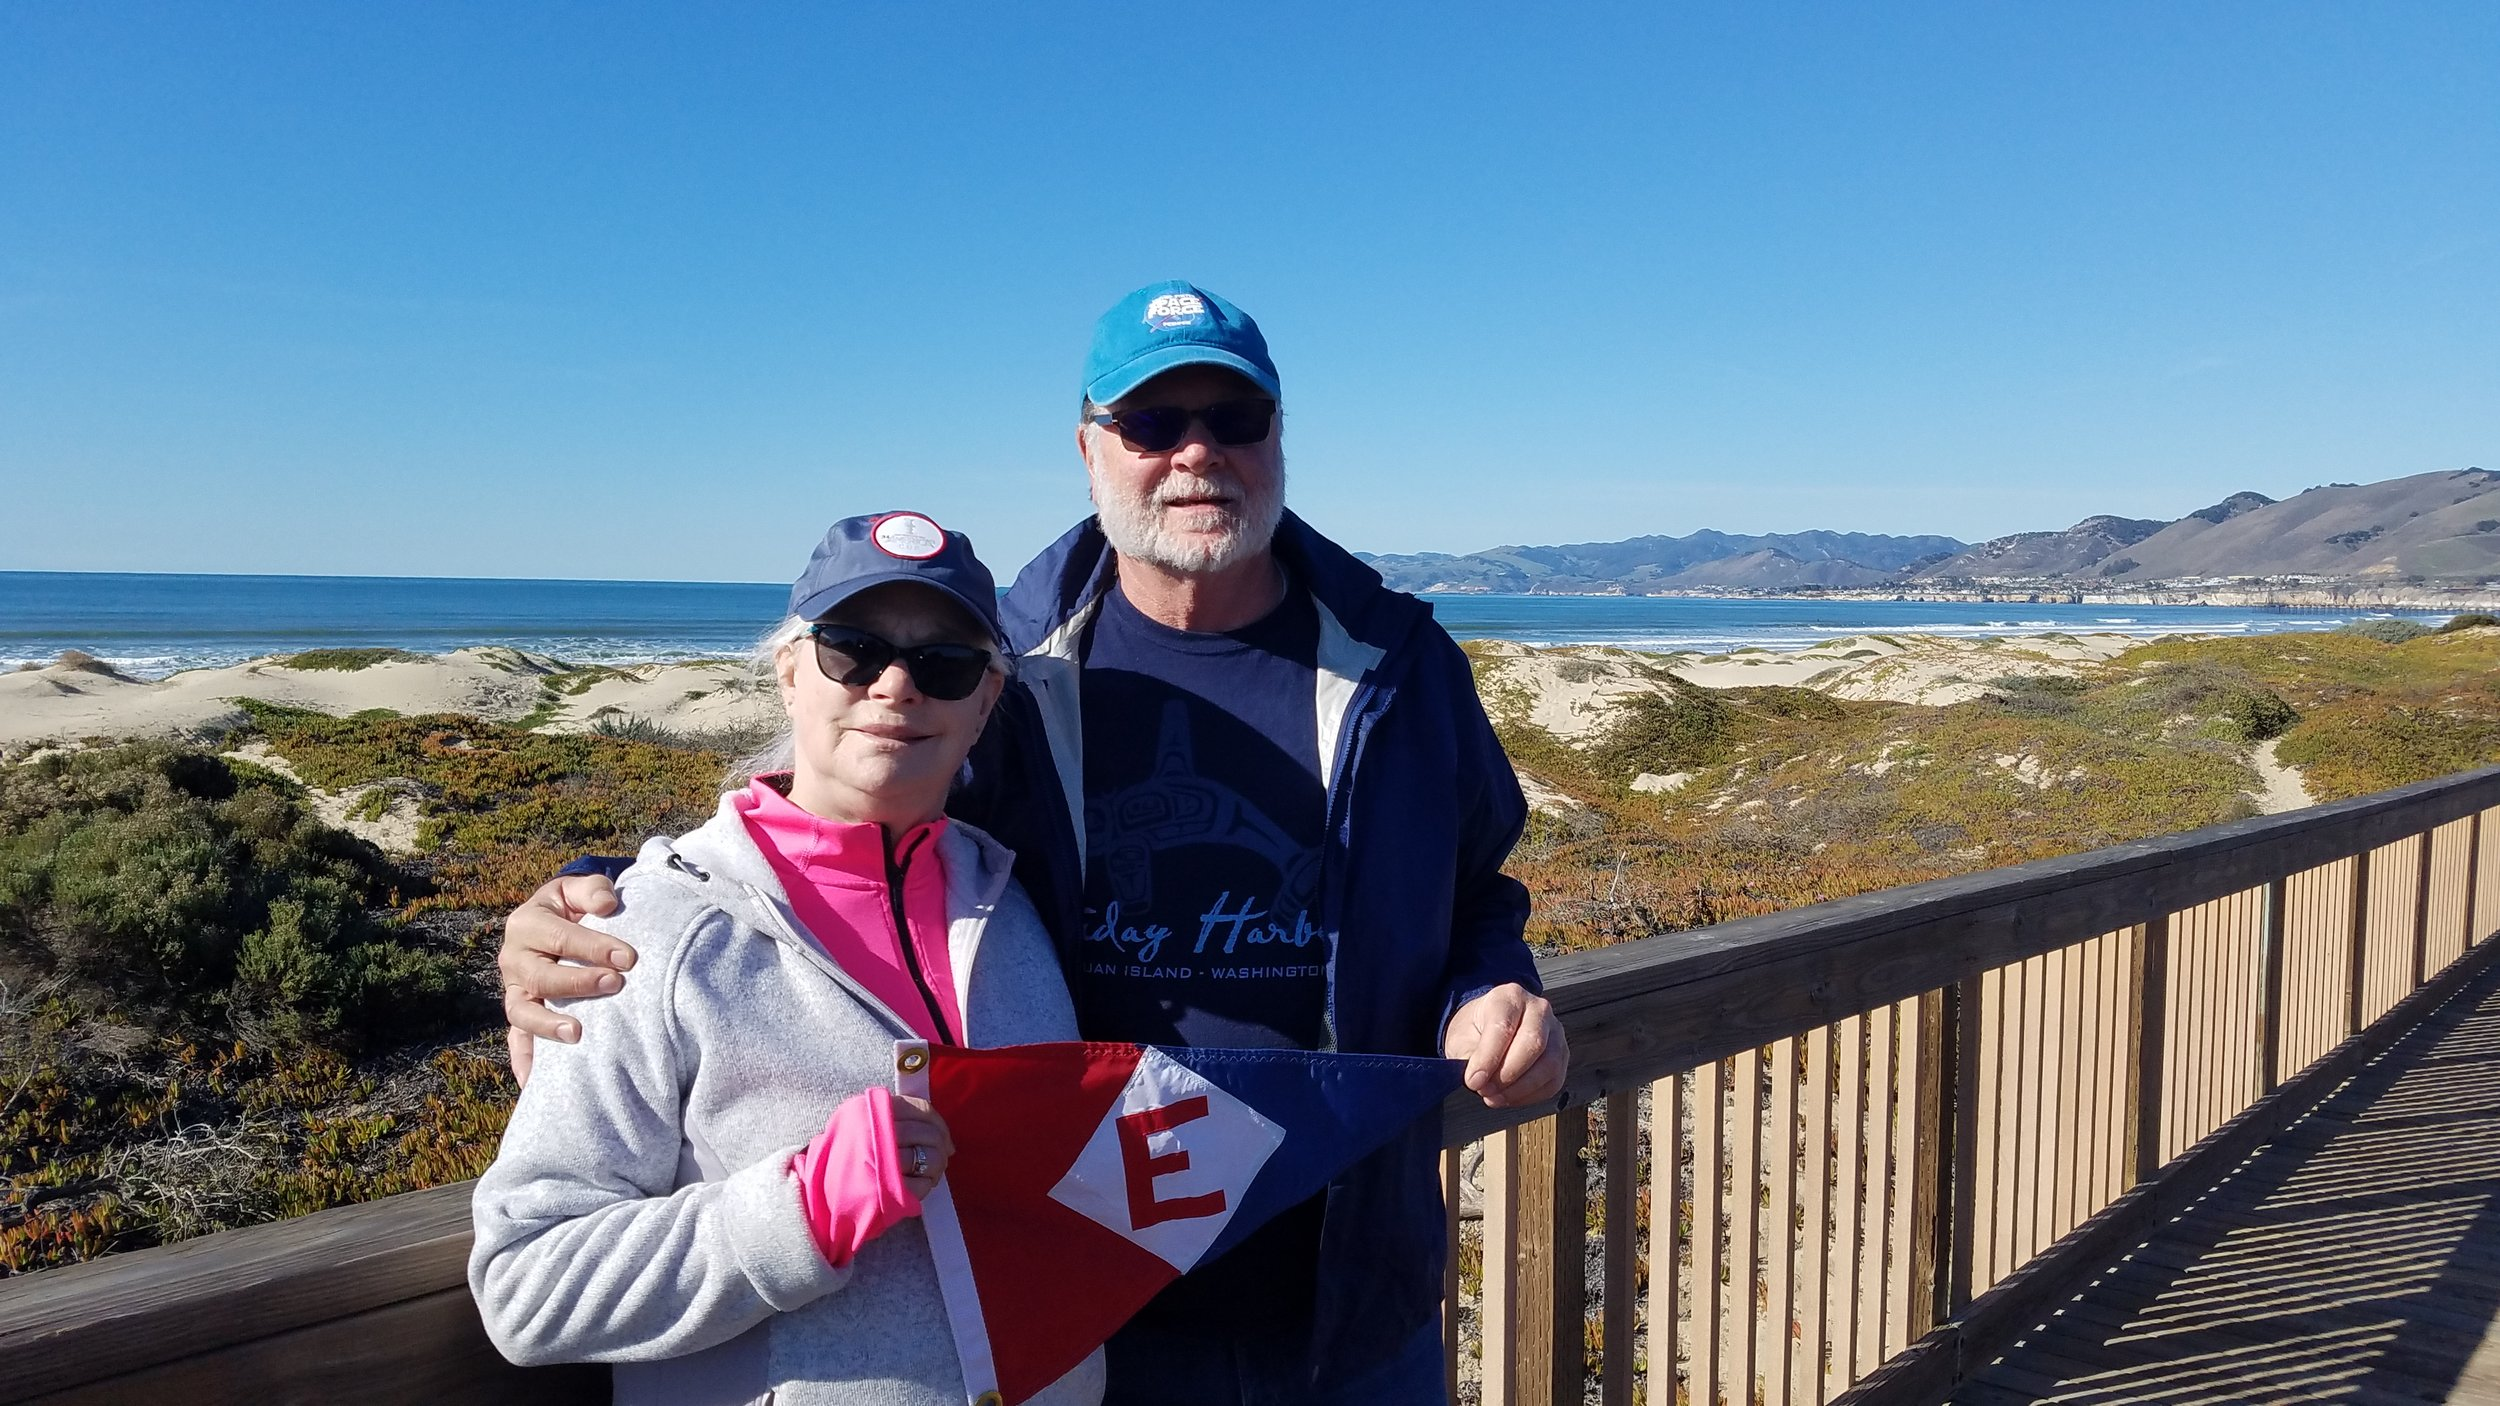 Linda & Murray McLeod hoist the colors in Pismo Beach, California